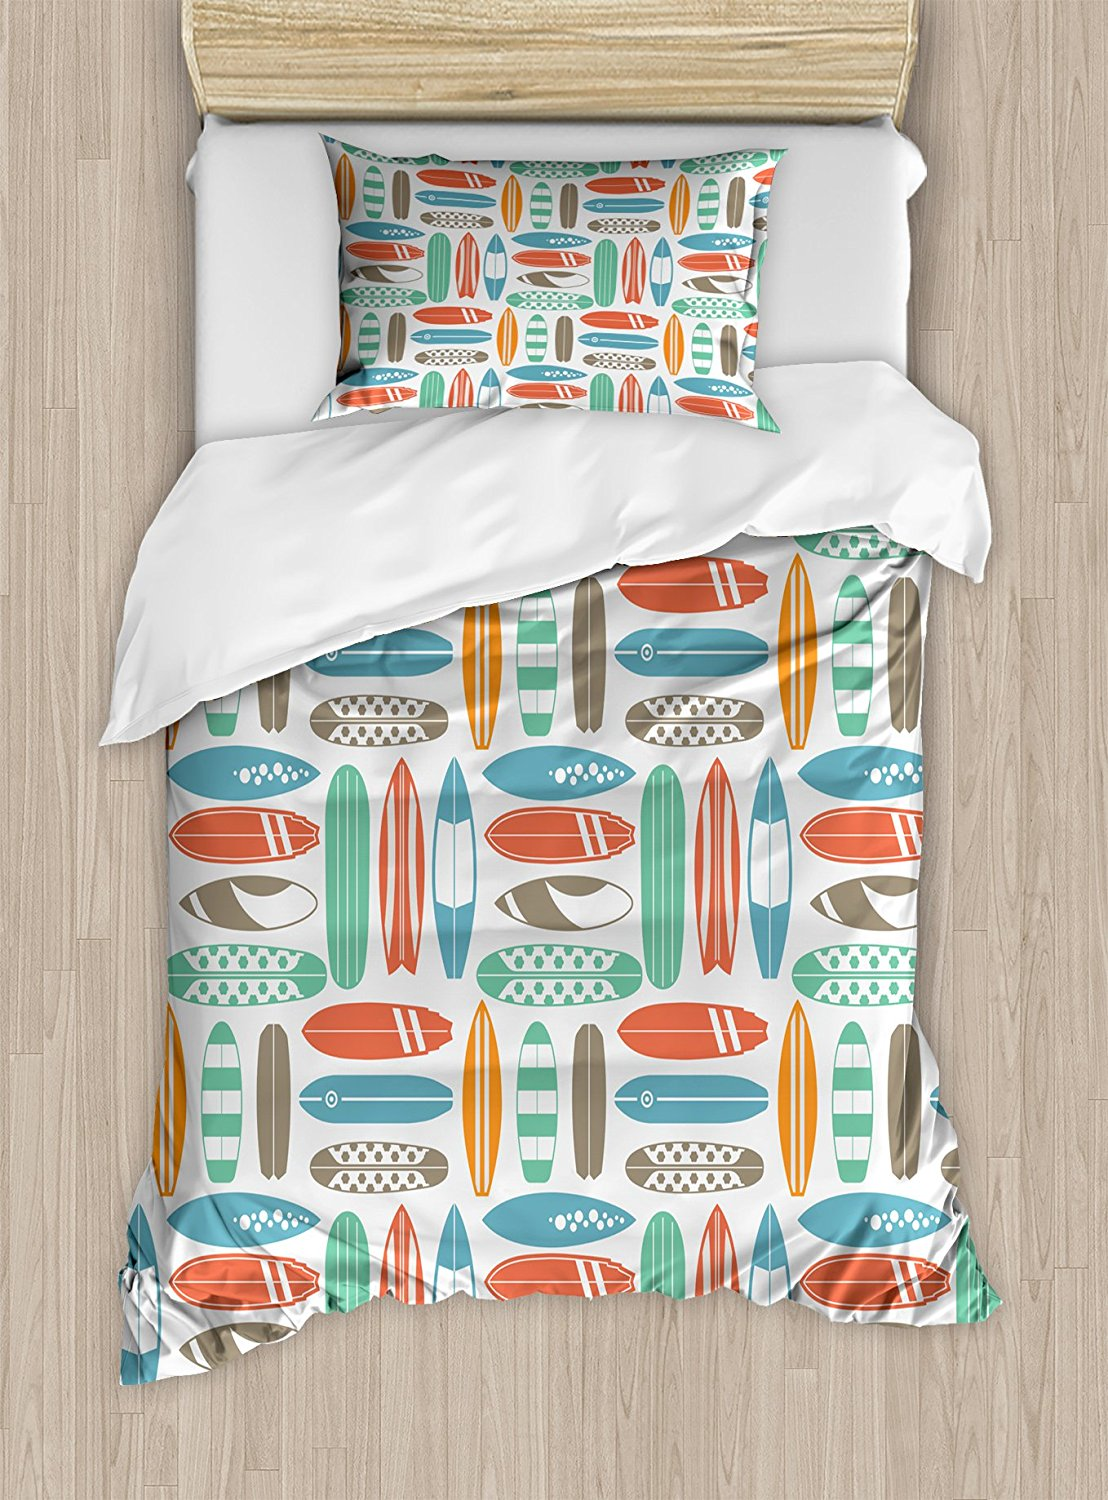 Surfboard Duvet Cover Set Colorful Surfing Sea Pattern With Summer Travel Ilration In Retro Colors 4 Piece Bedding Sets From Home